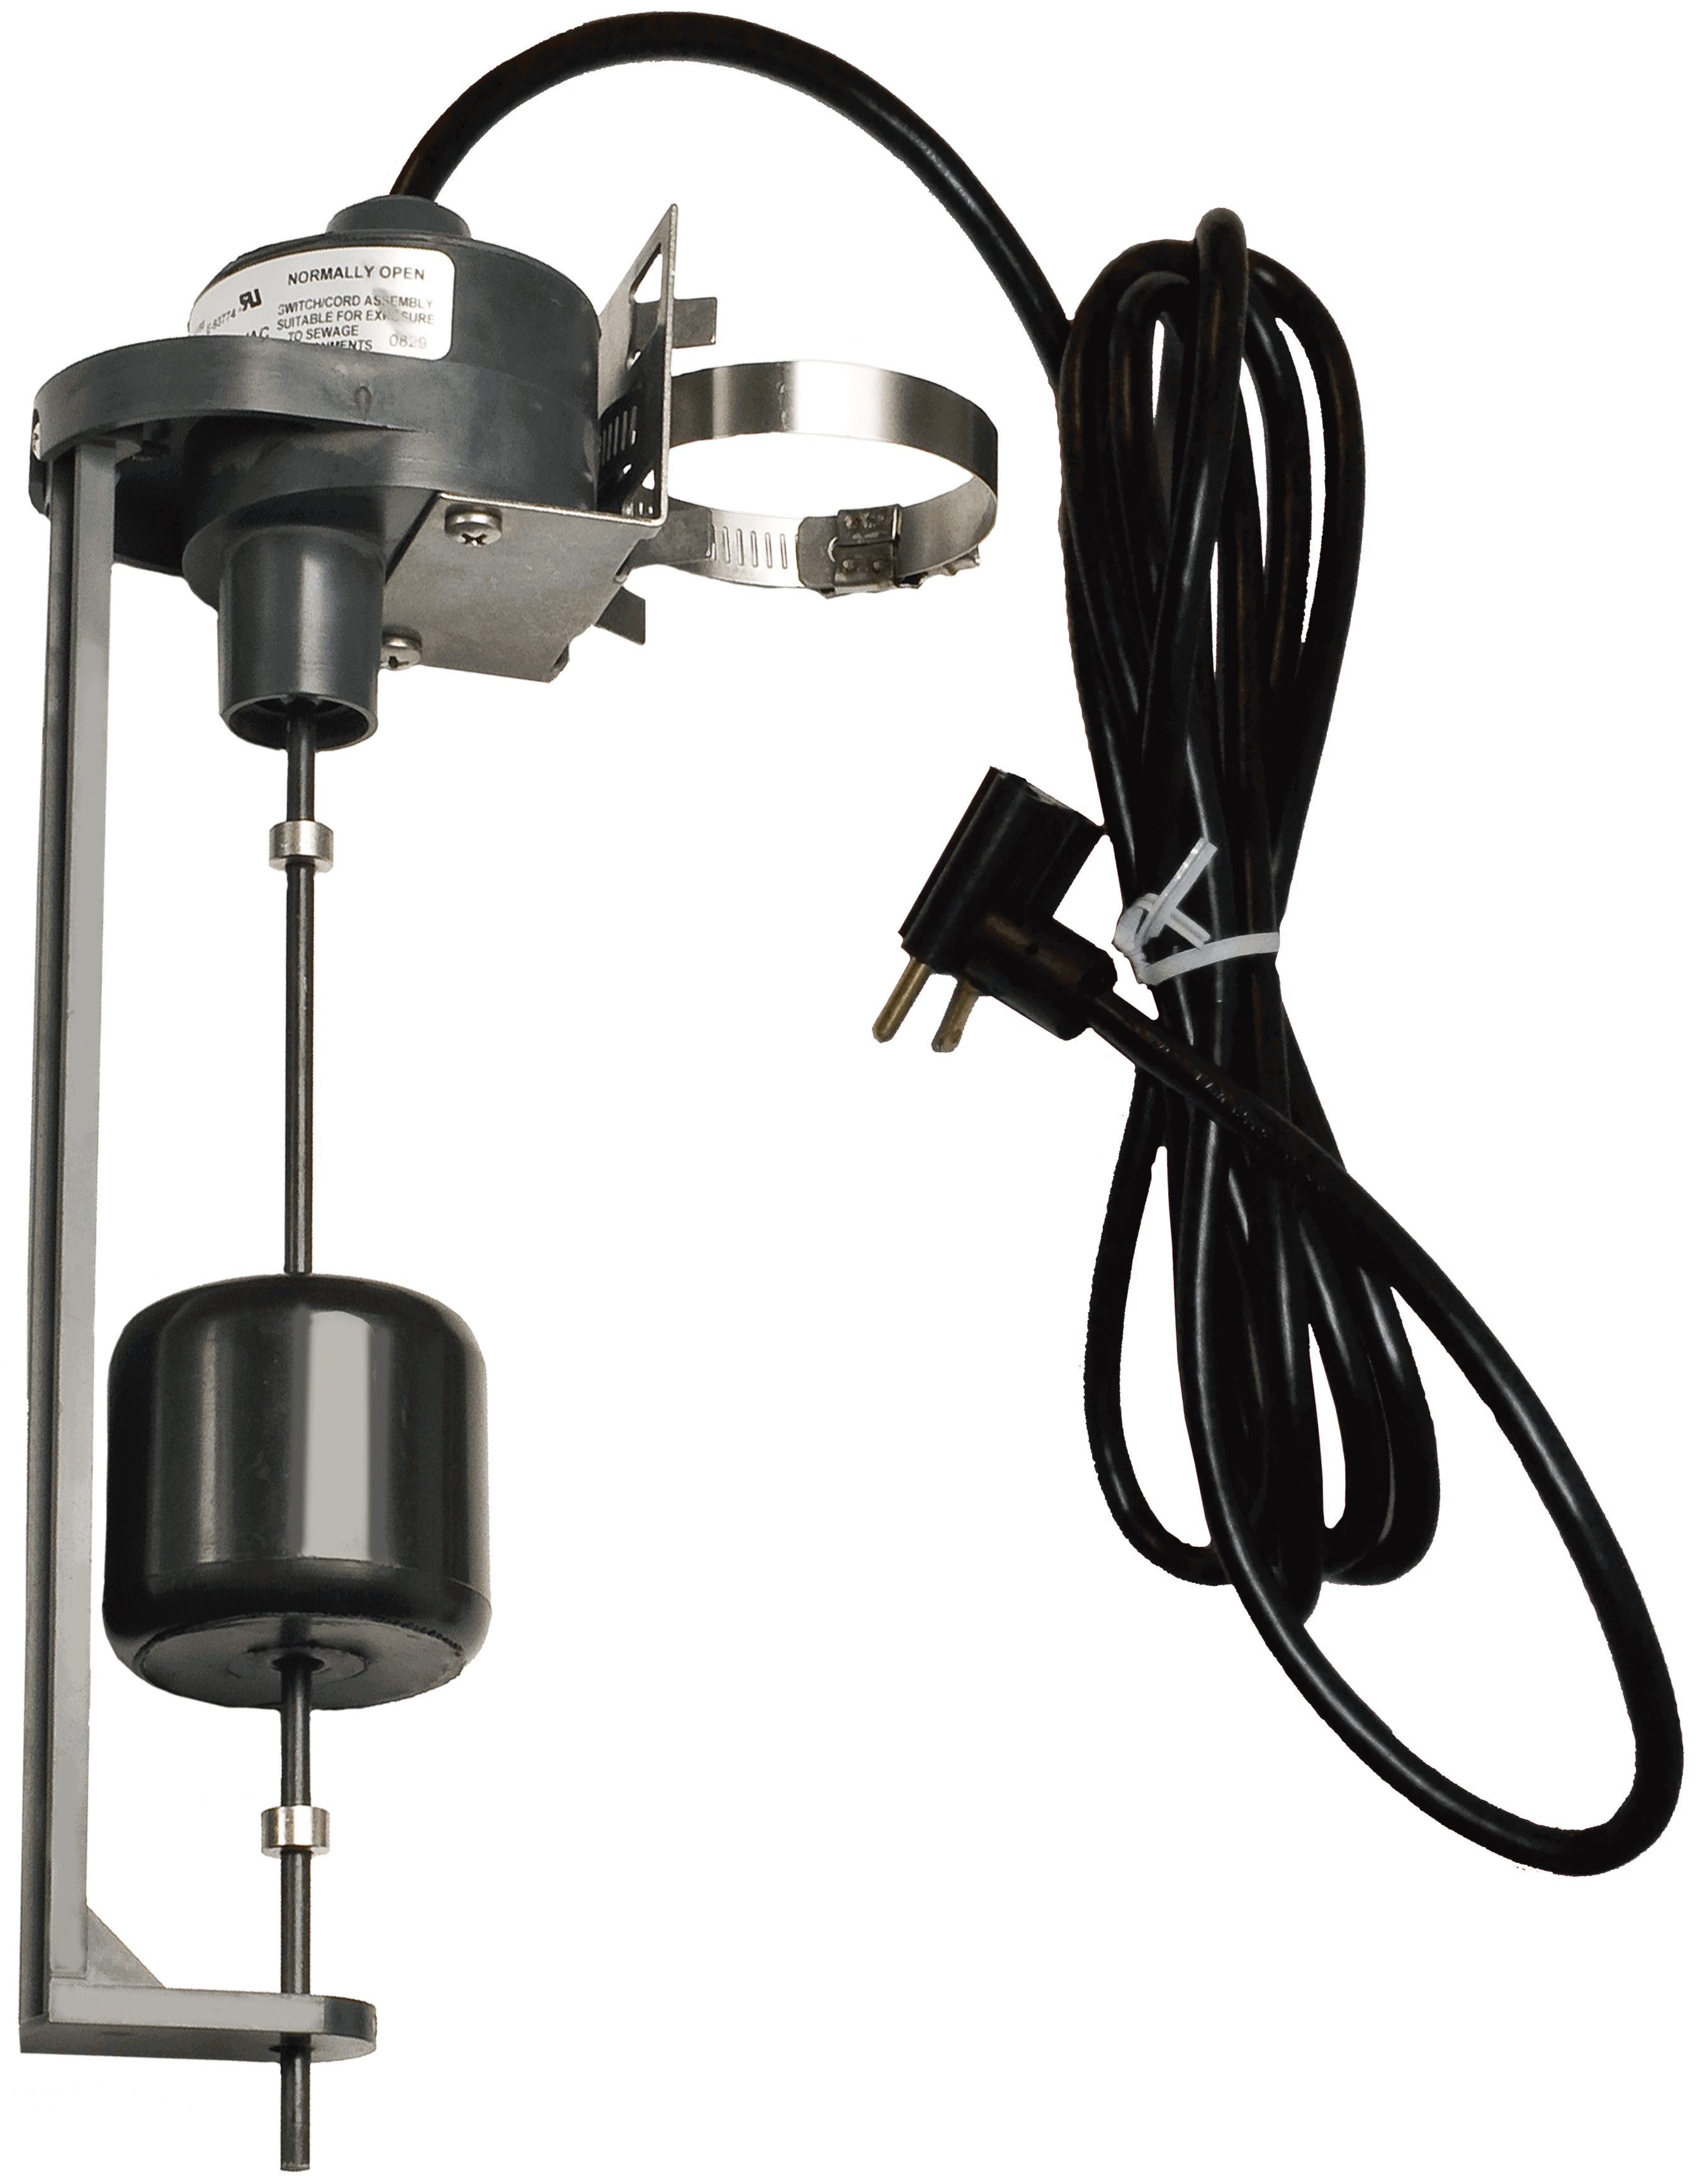 Fabulous Sewage Pump 108 Gpm 18 Foot Head 1 2 Hp 115 Vac With A 10 Wiring Digital Resources Pelapshebarightsorg